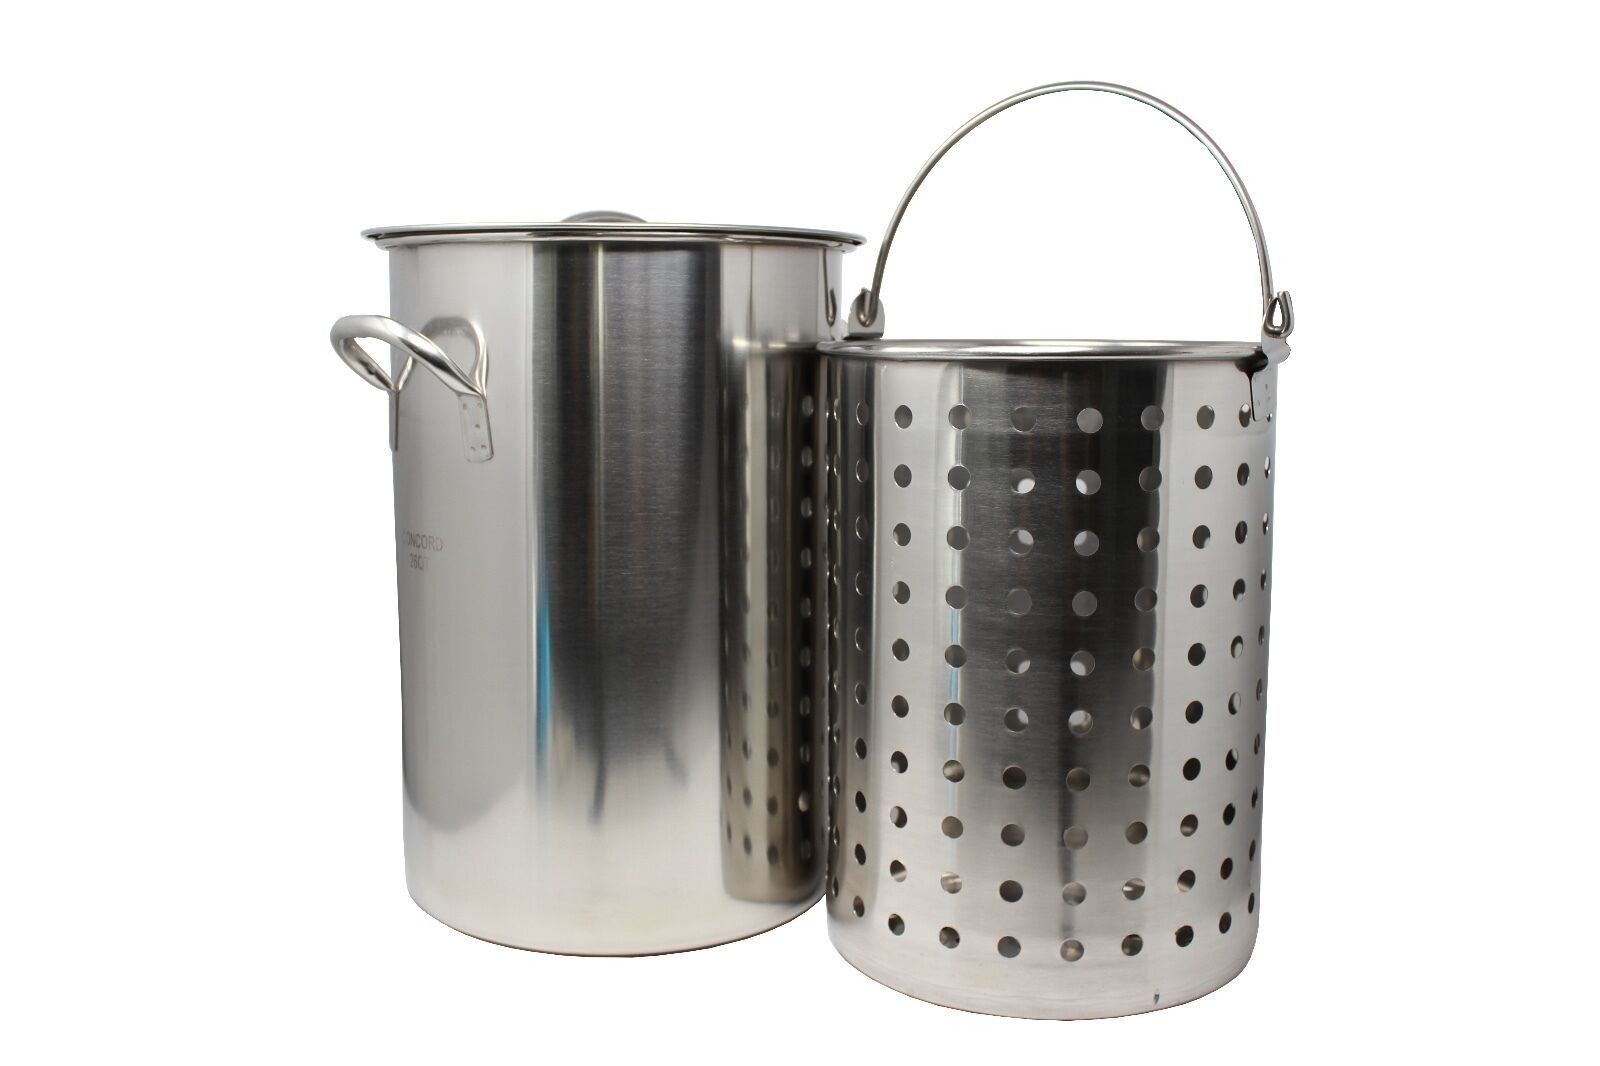 CONCORD Stainless Steel Stock Pot w/ Basket. Heavy Kettle. Cookware for Boiling